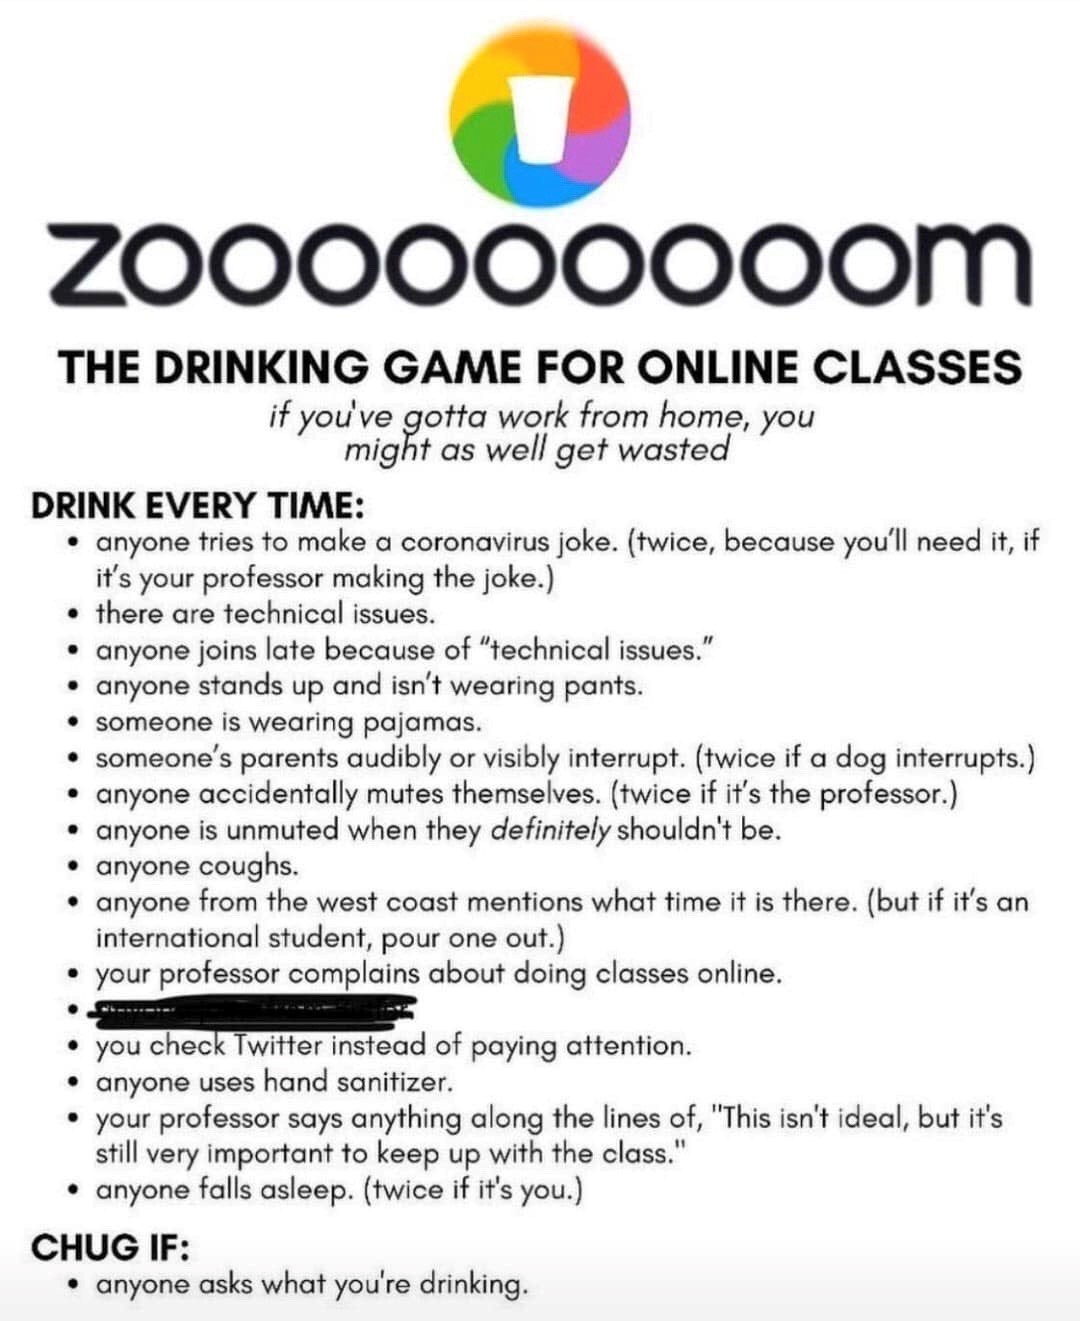 ONLINE CLASS DRINKING GAME